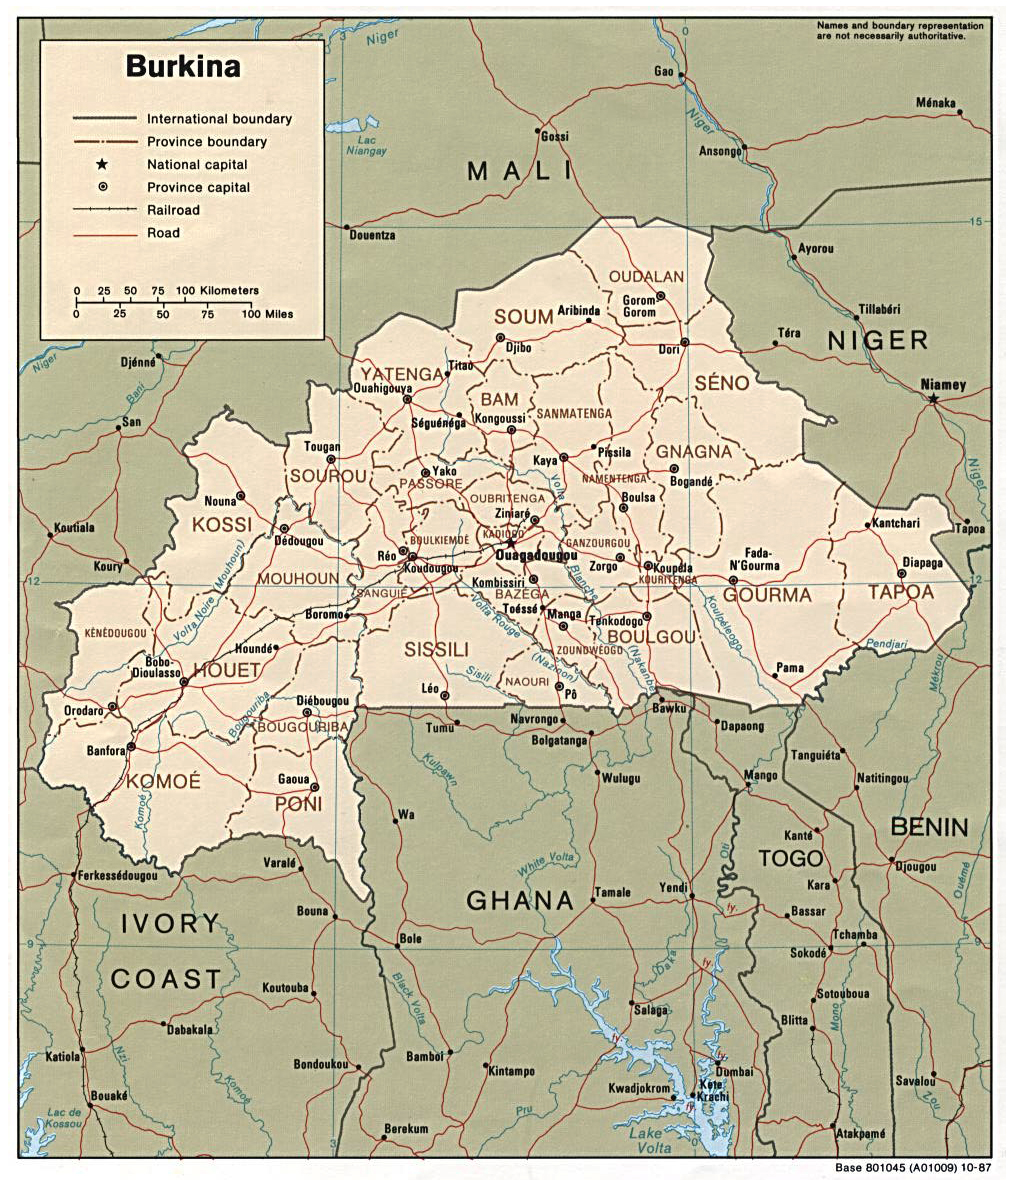 Maps of Burkina Faso Map Library Maps of the World